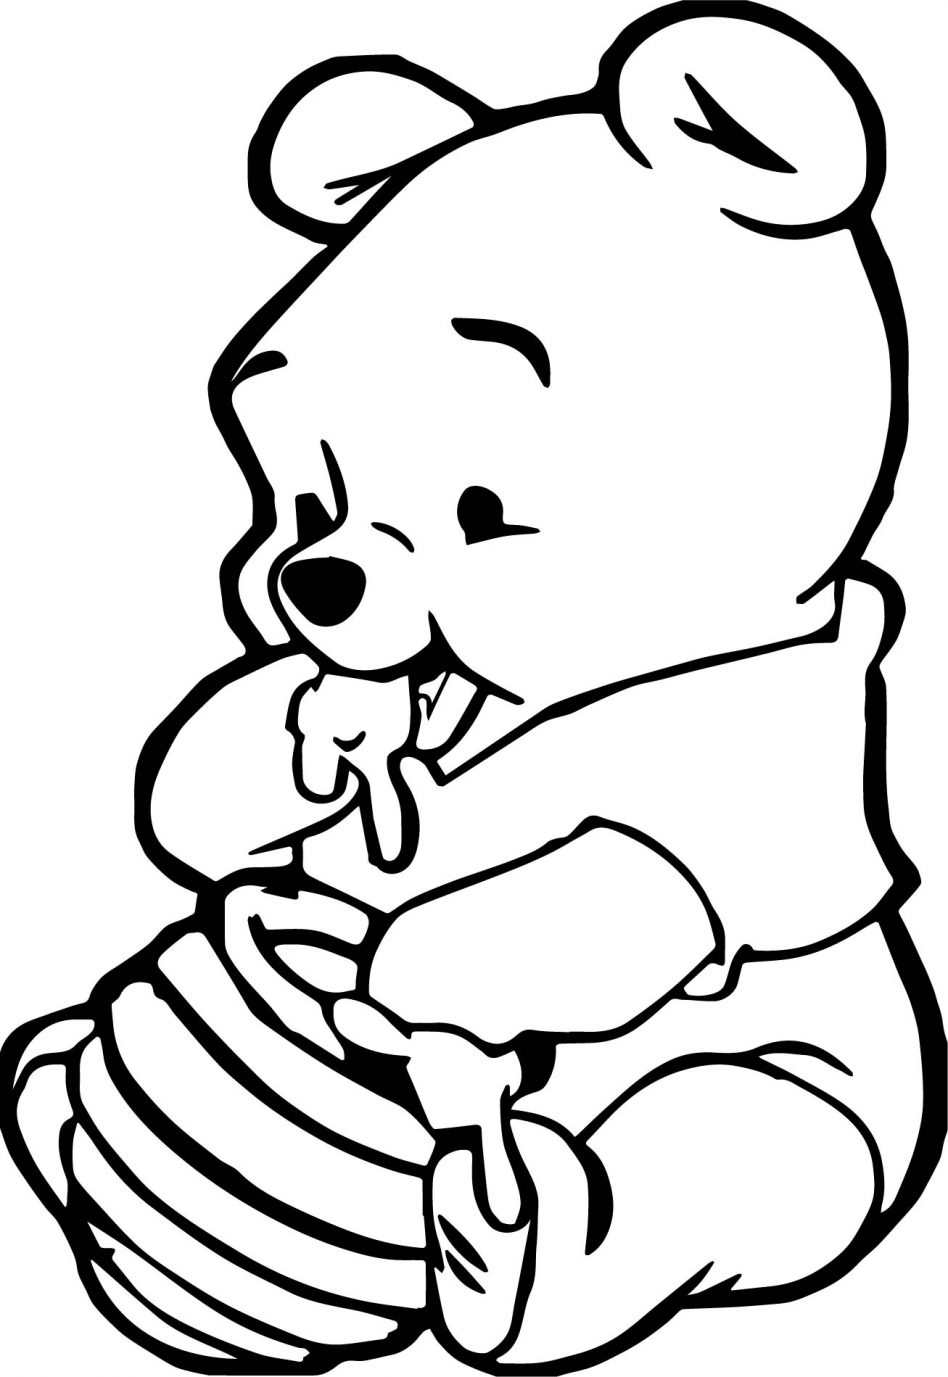 948x1377 Baby Winnie The Pooh Coloring Pages Mayapurjacouture Com